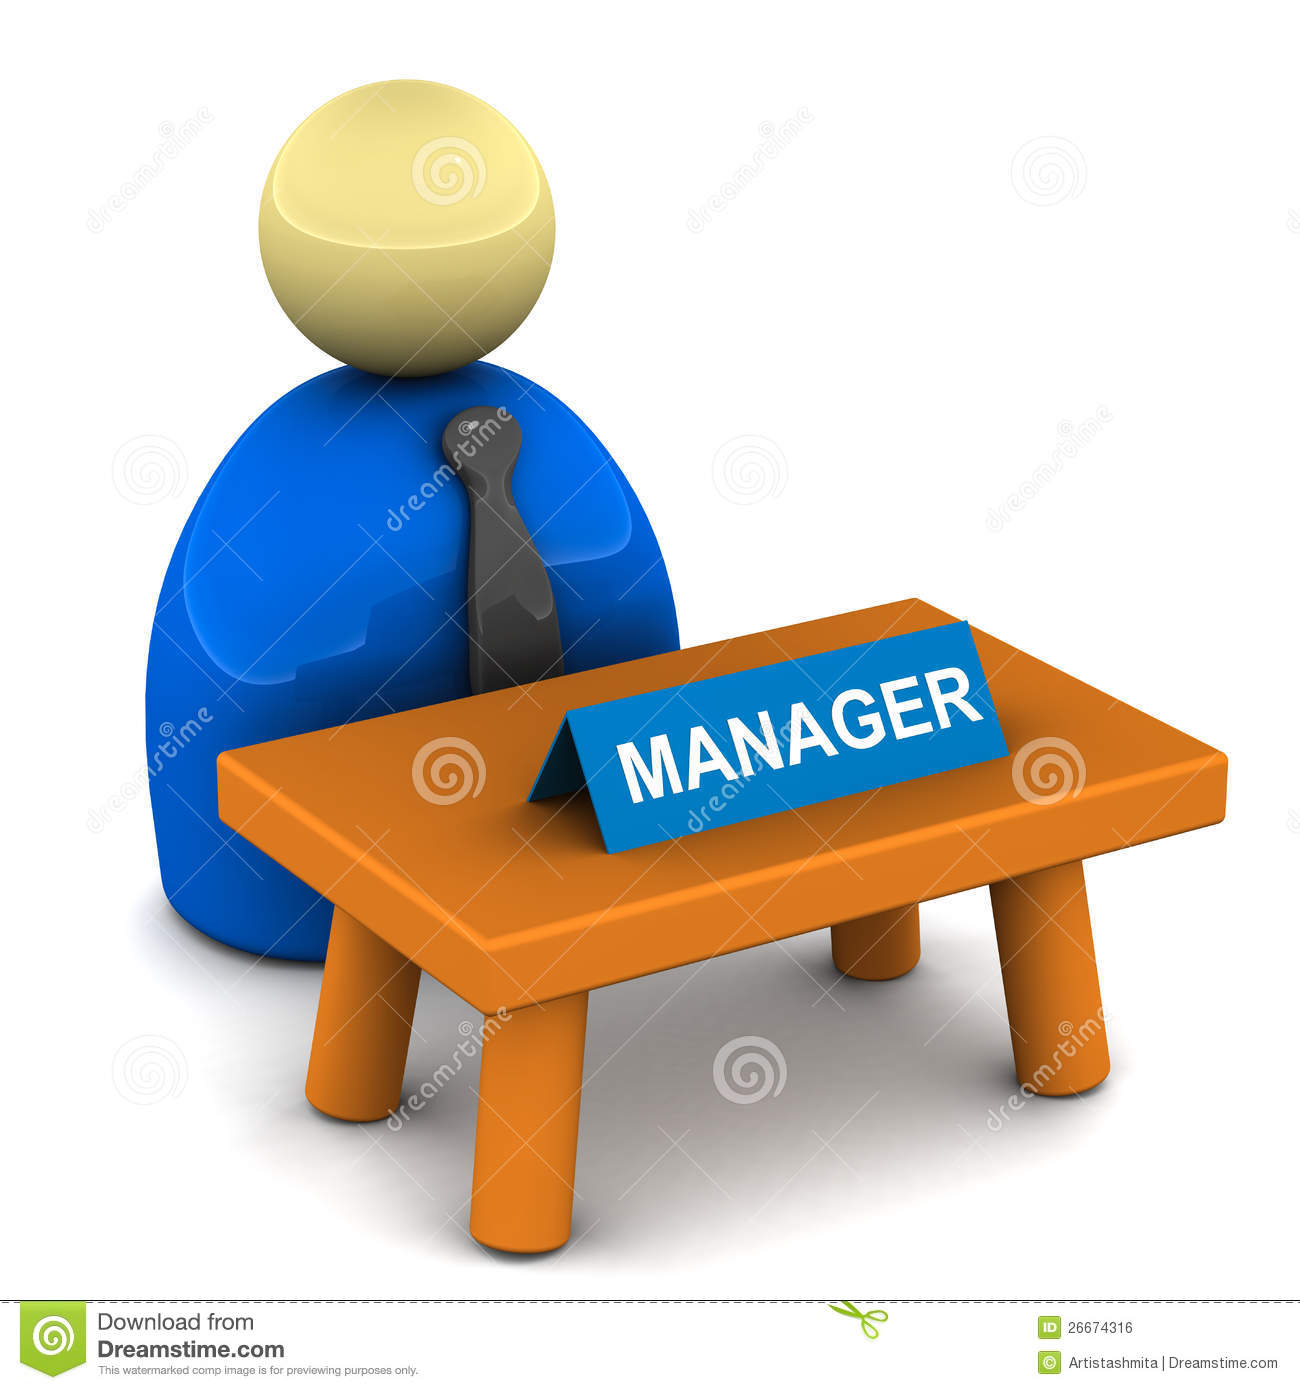 Managers Desk Royalty Free Stock Image - Image: 26674316